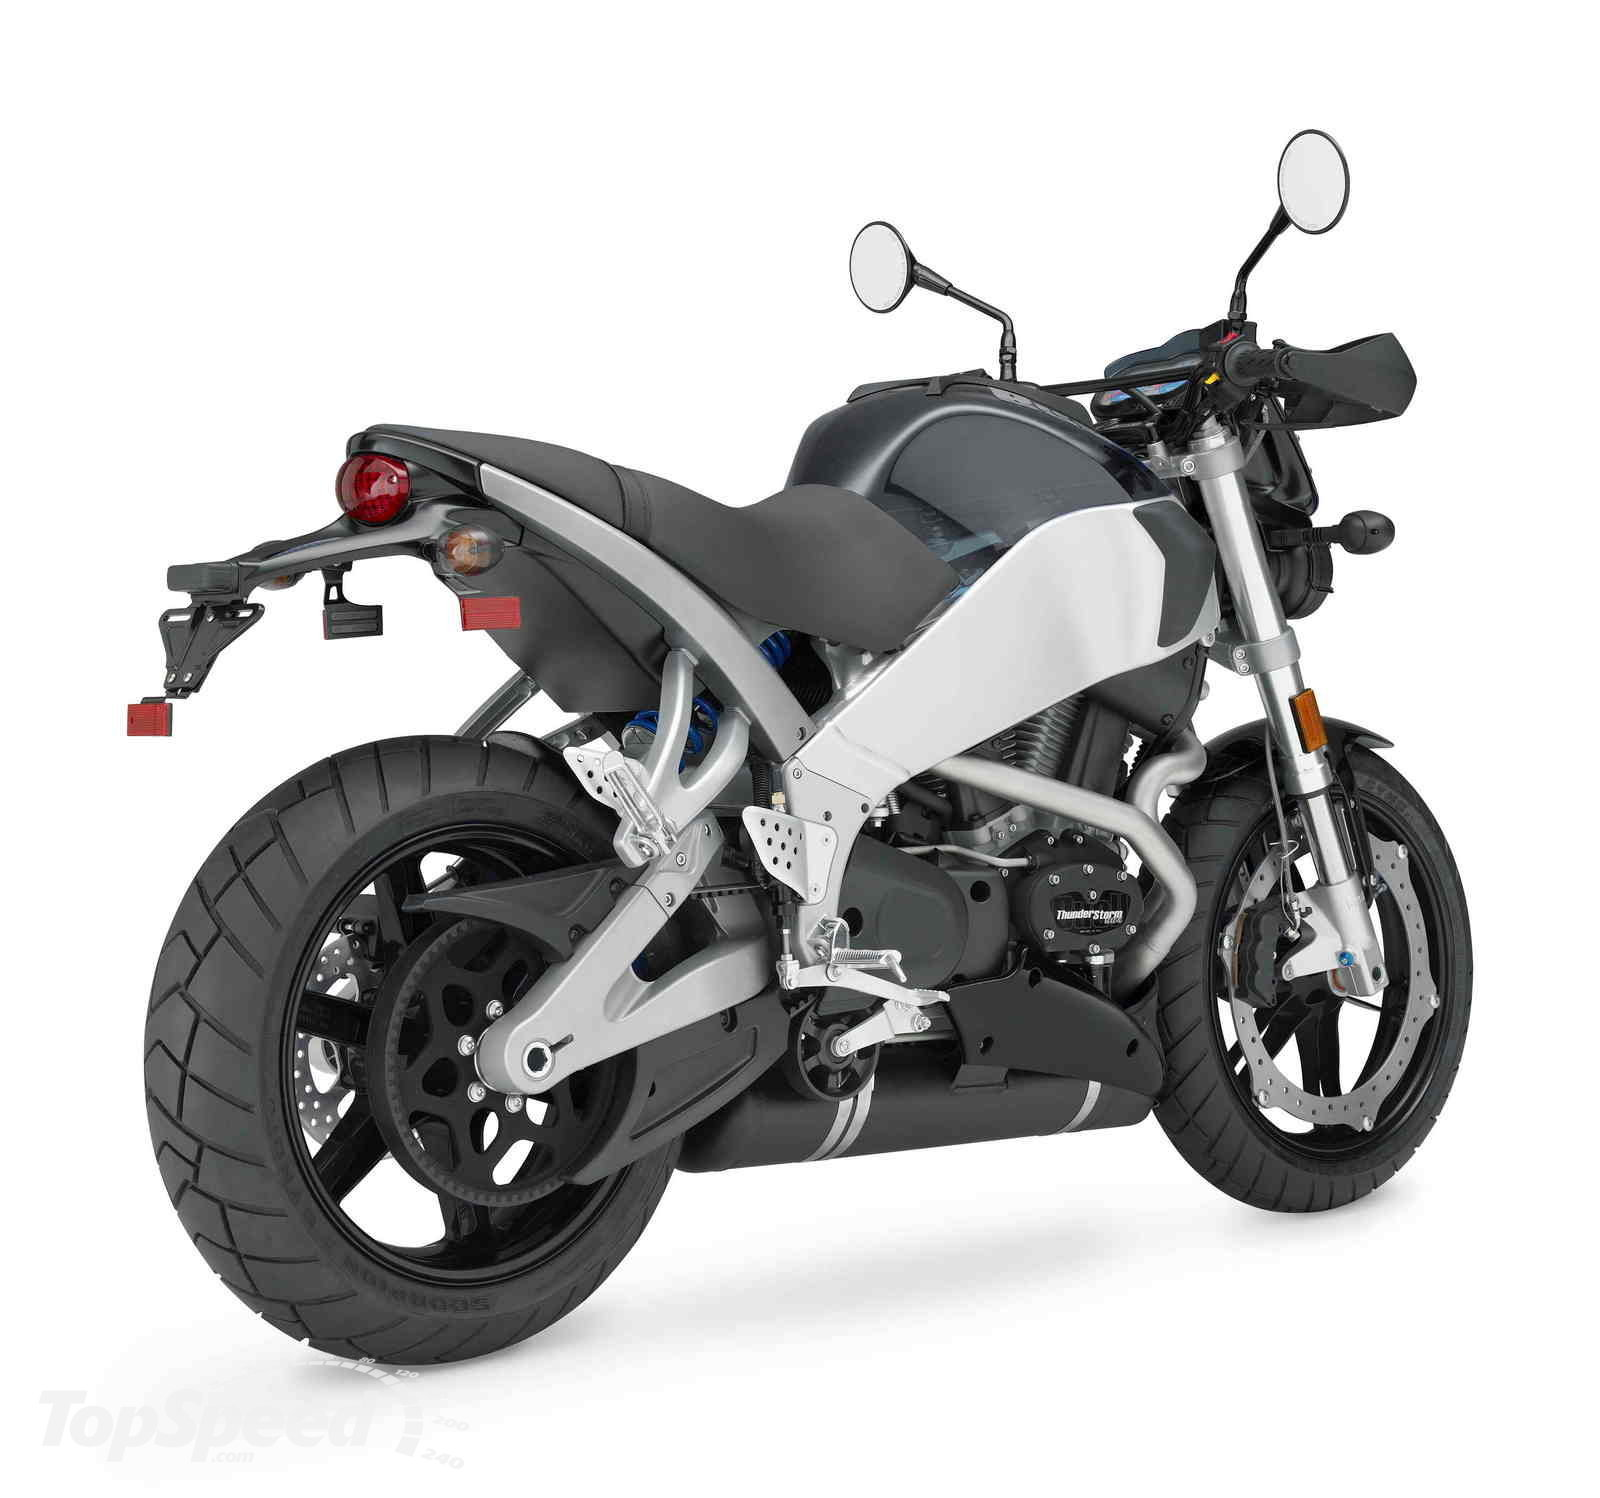 Buell Lightning CityX XB9SX 2010 images #66376